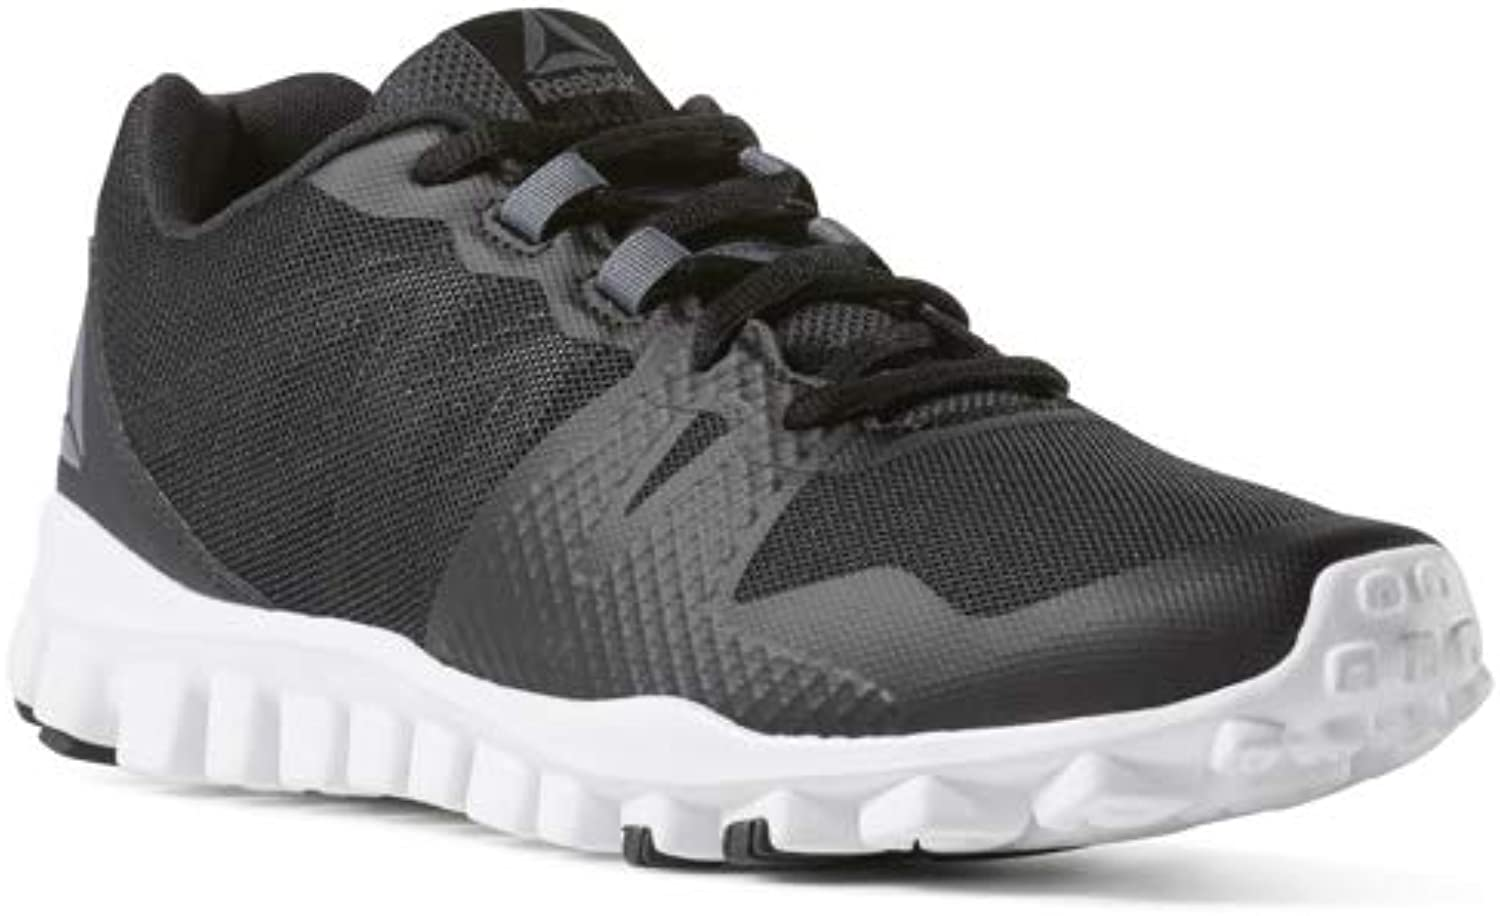 Reebok Mens Realflex Train 5.0 Fitness & Cross Training